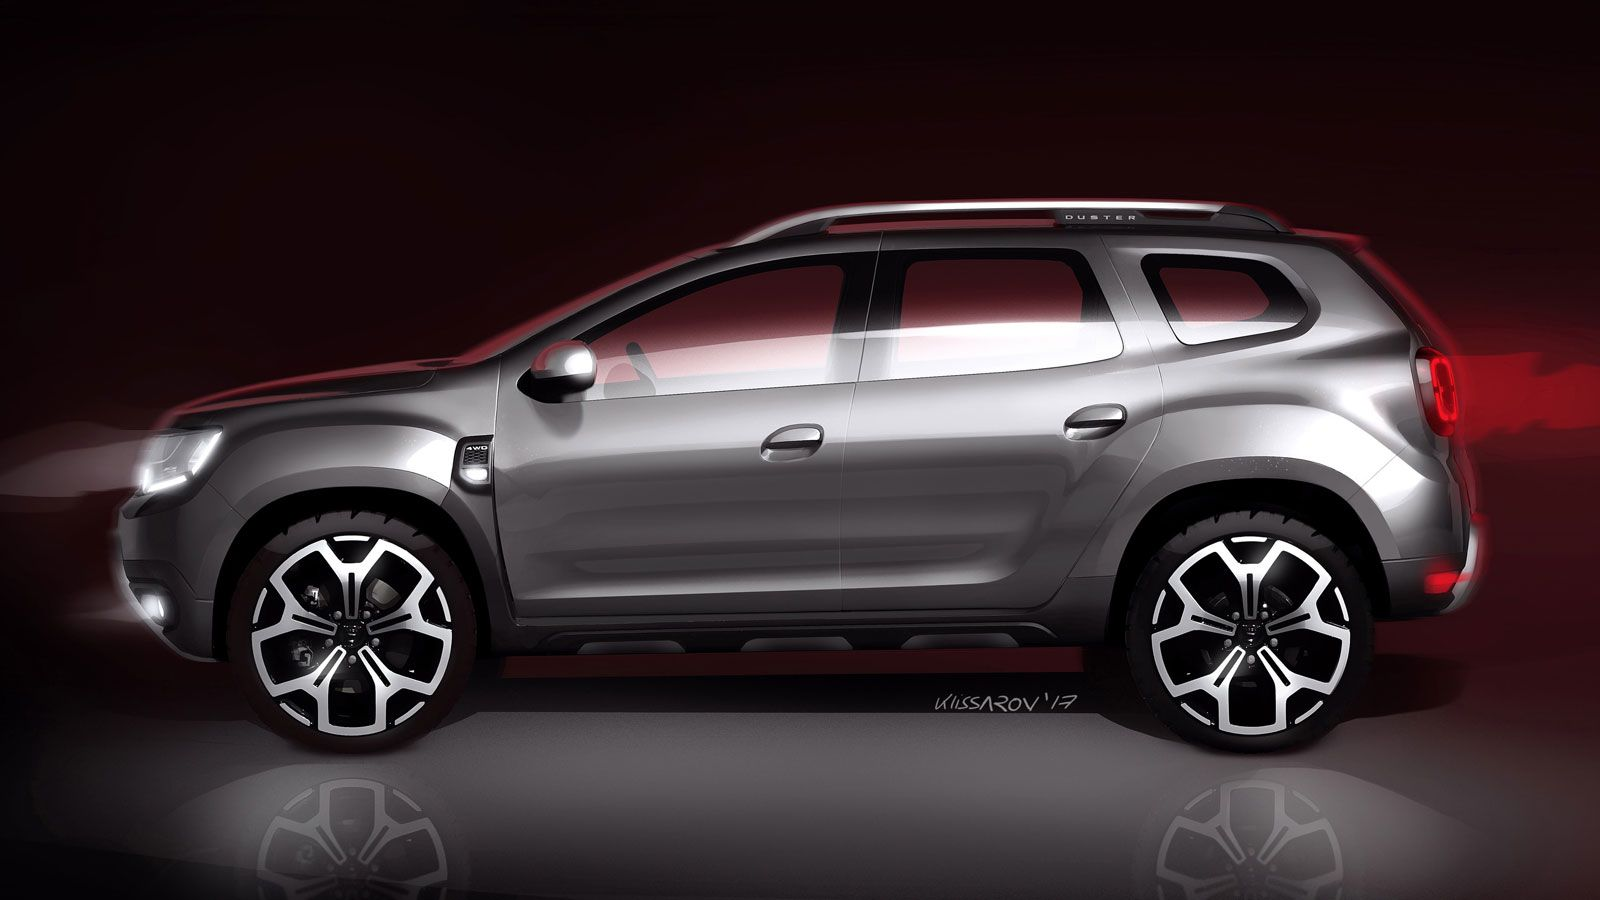 Pin By Lomiize Tang On Car Design Sketches Renault Duster Futuristic Cars Dacia [ 900 x 1600 Pixel ]